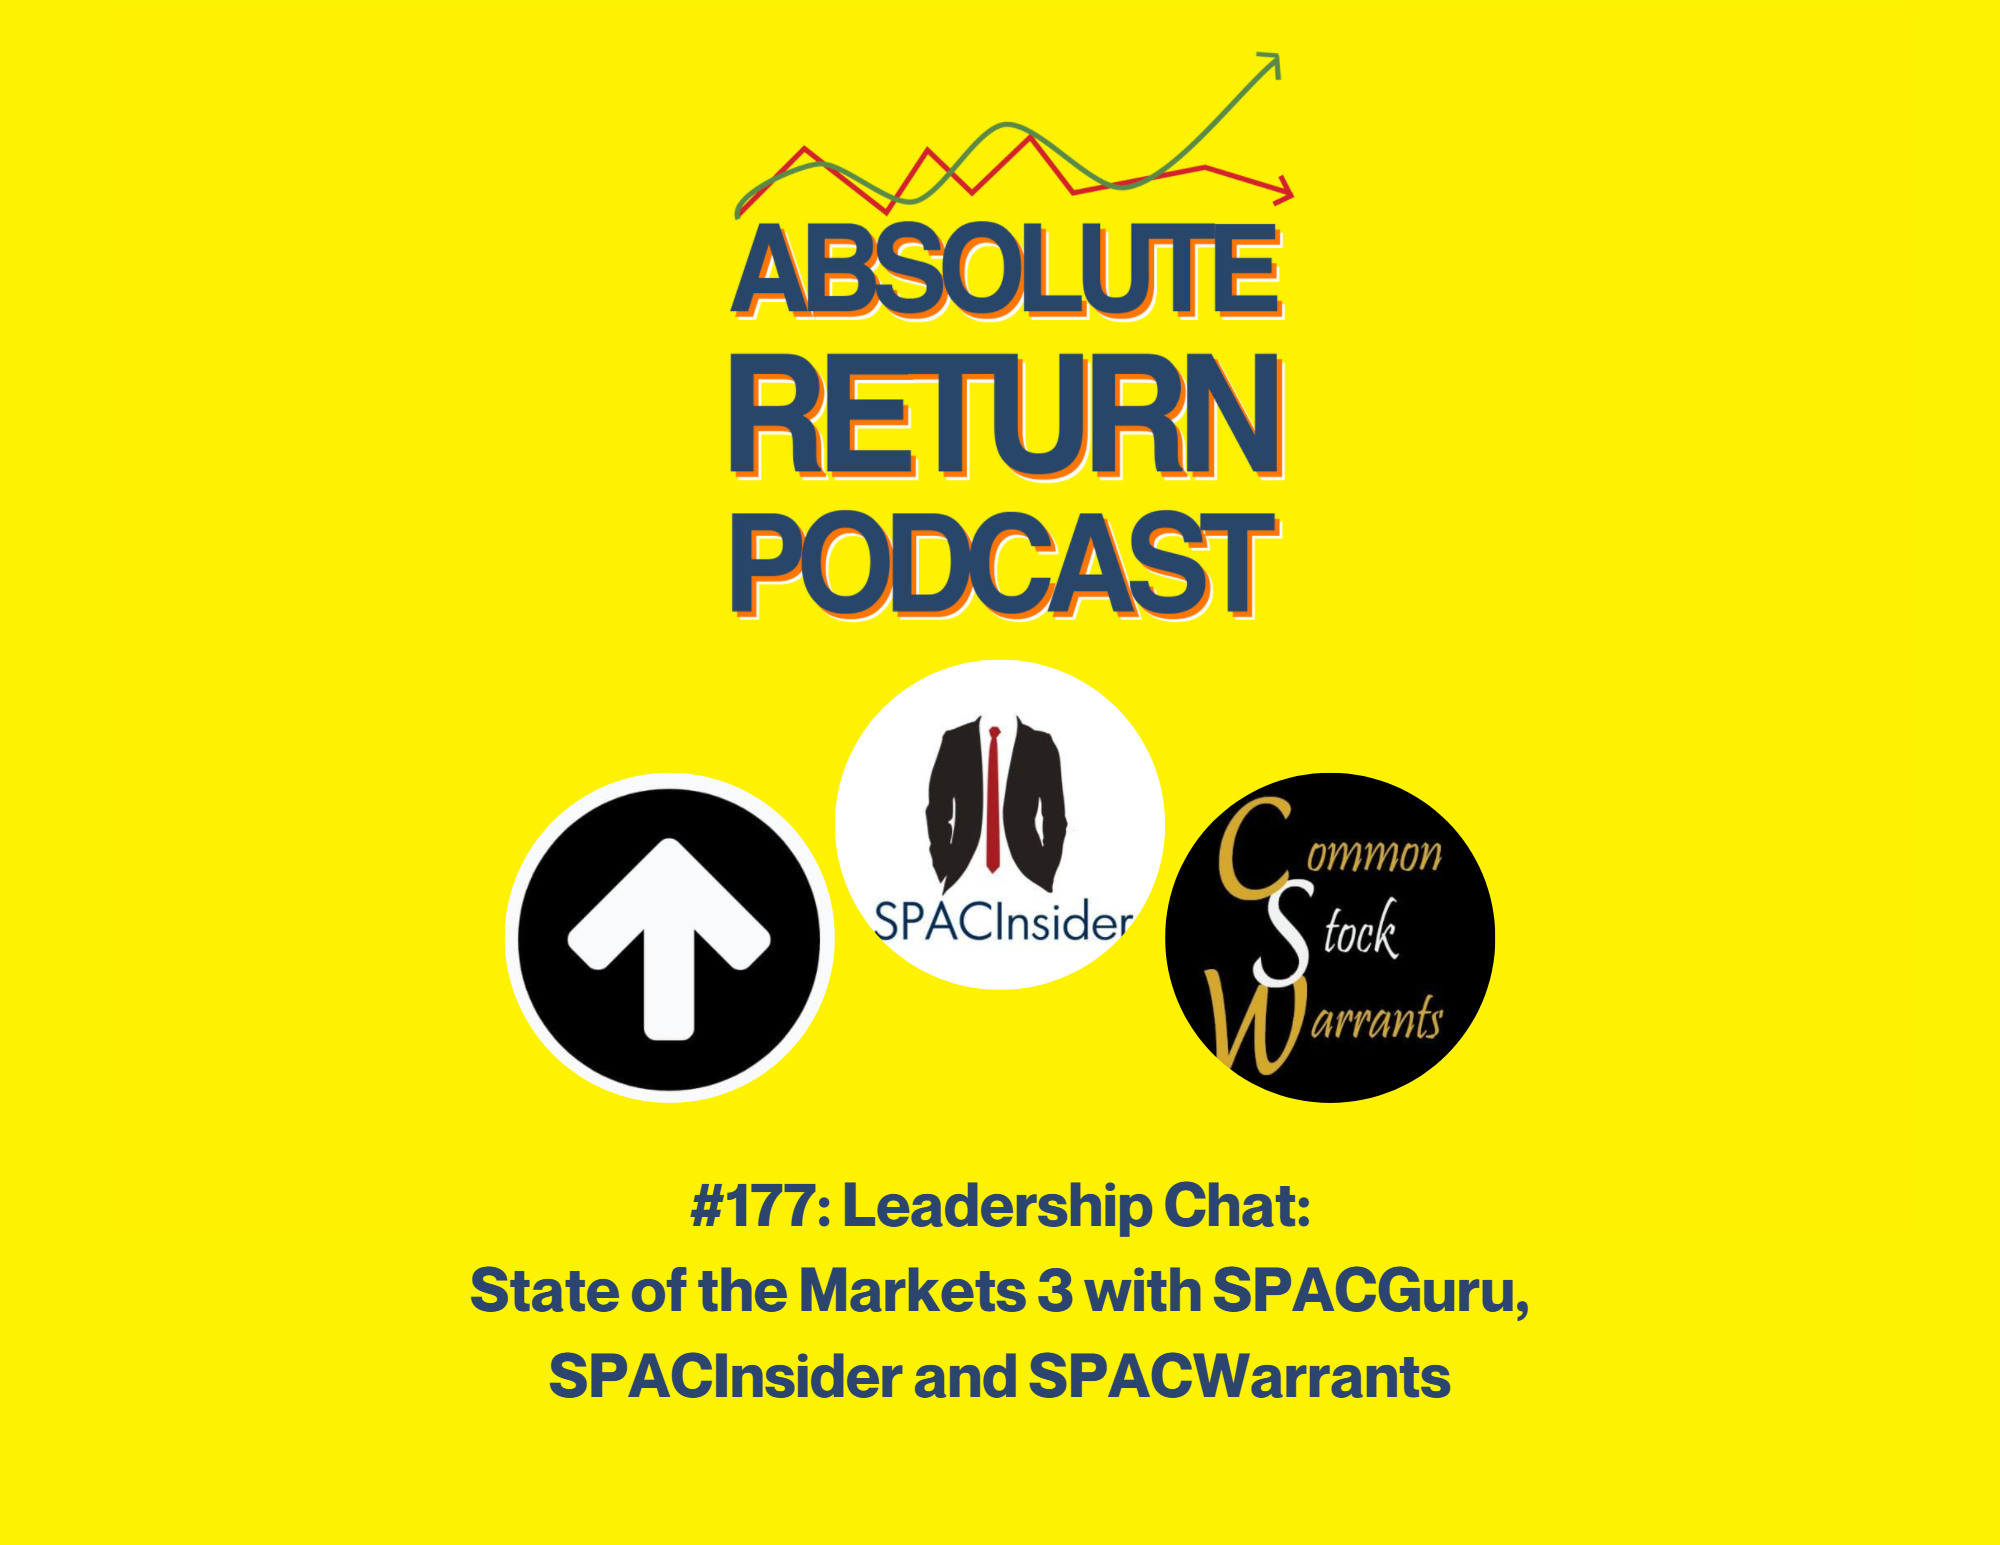 Absolute Return Podcast #177: State of the Markets 3 with SPACGuru, SPACInsider and SPACWarrants